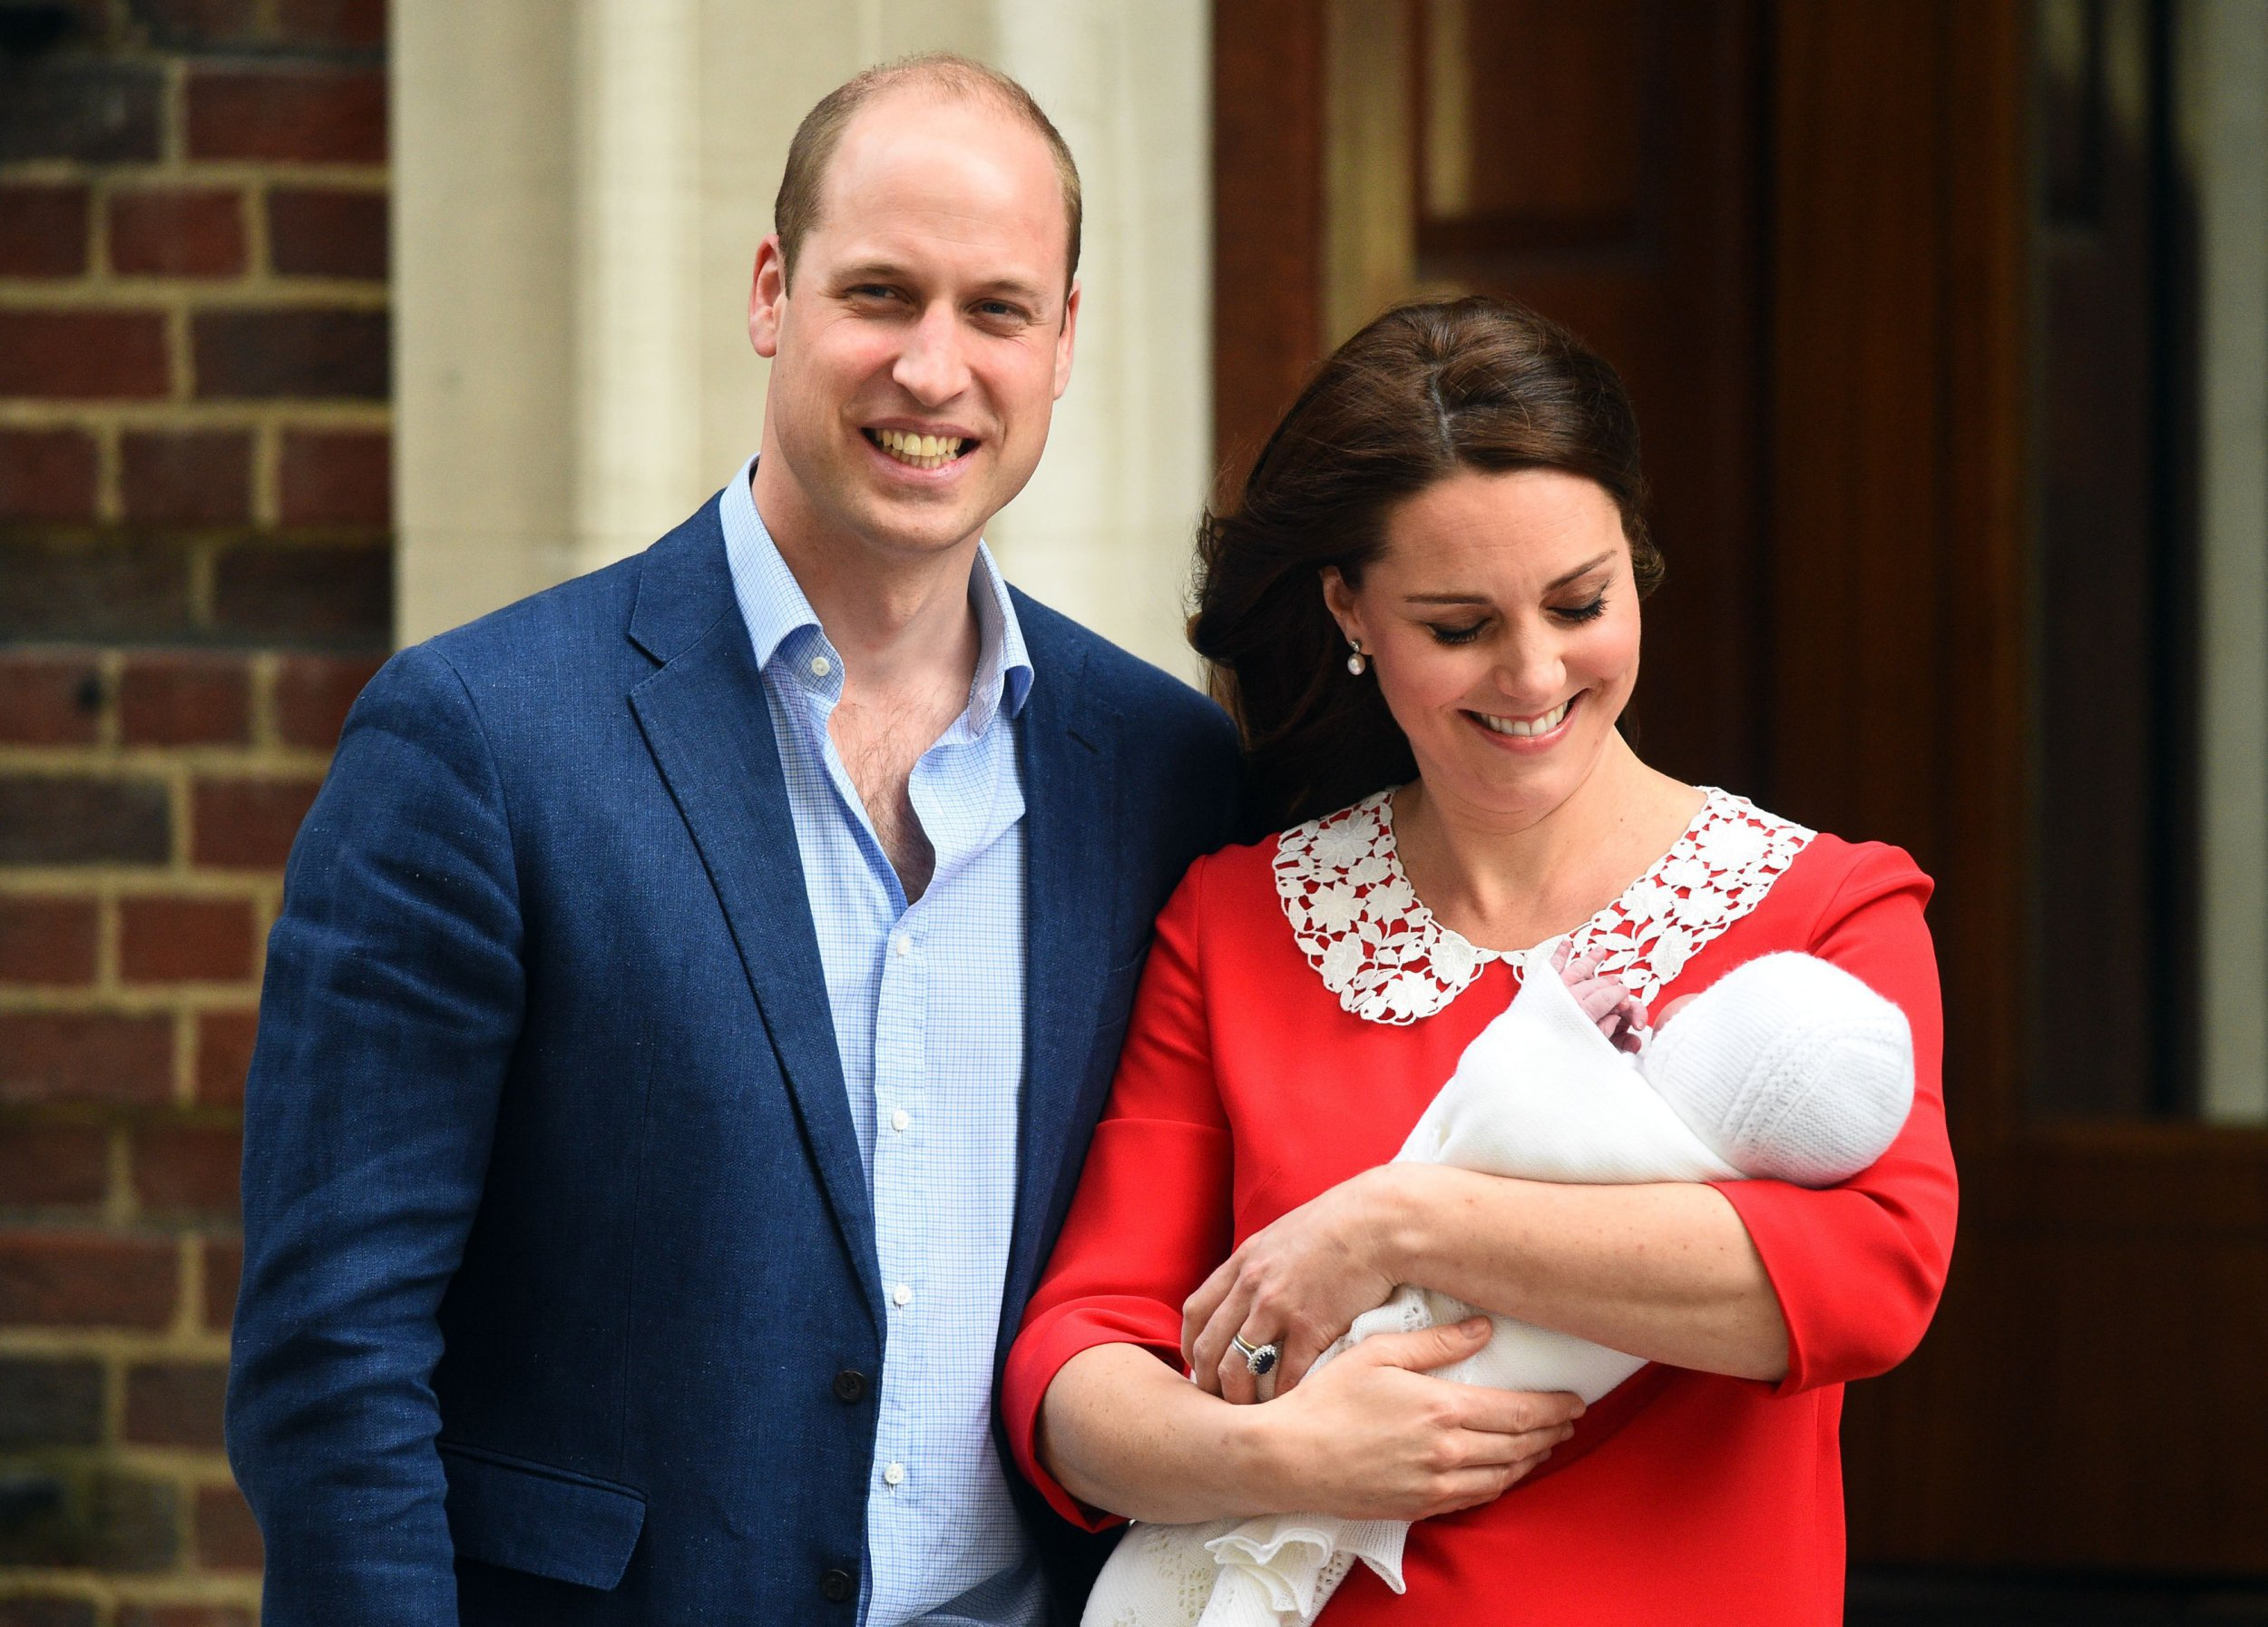 What were the odds on the royal baby being called Louis? There was serious money to be made